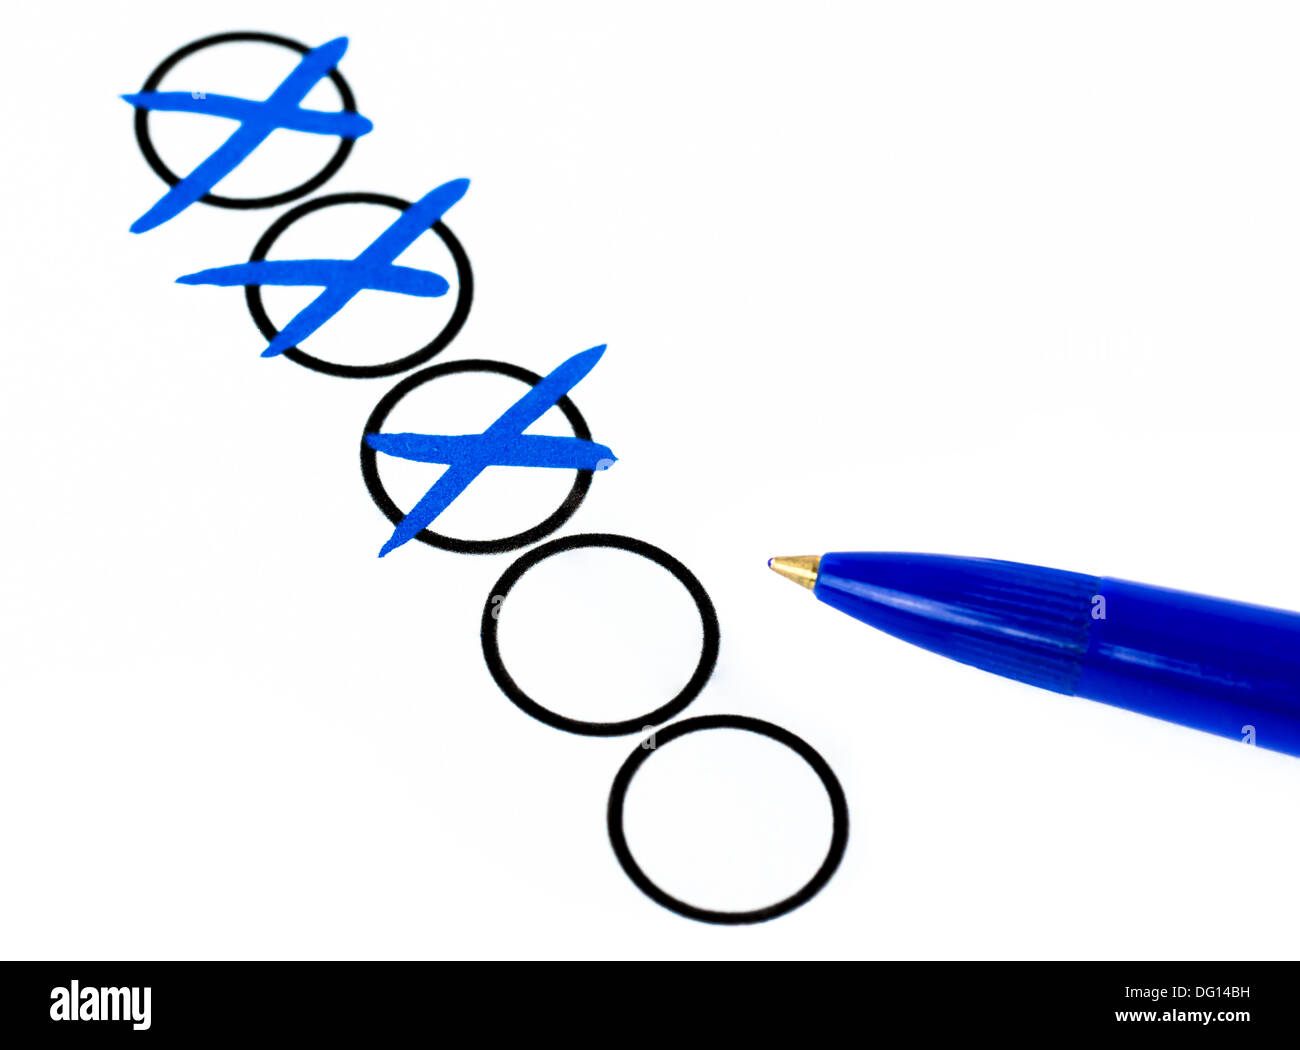 A blue pen is next to the checked boxes. - Stock Image